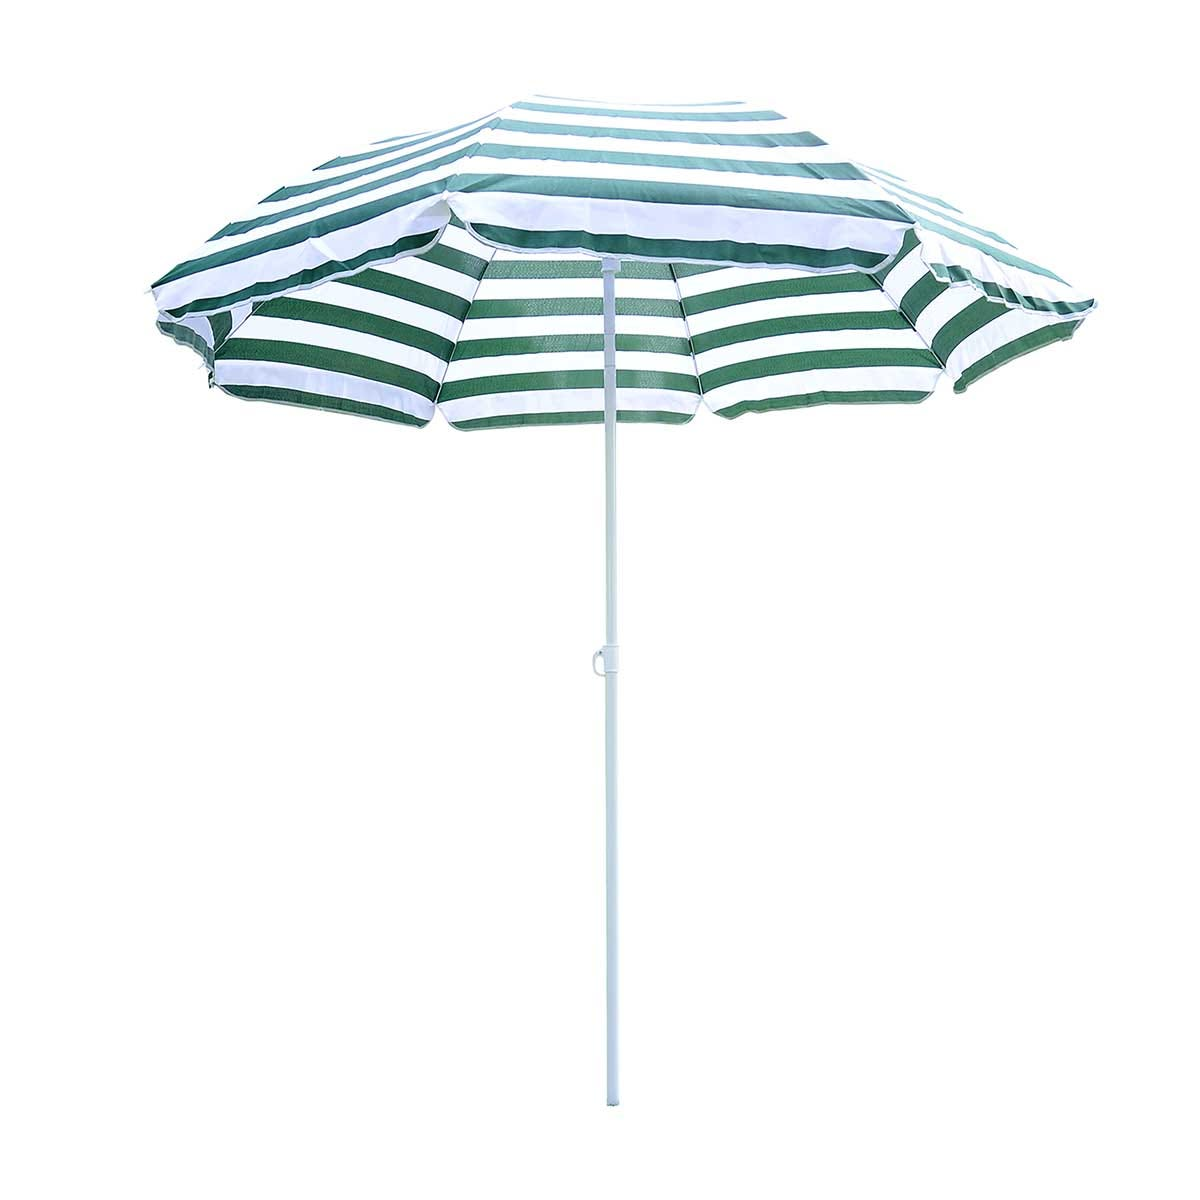 Outsunny Striped Outdoor Parasol Umbrella (base not included)